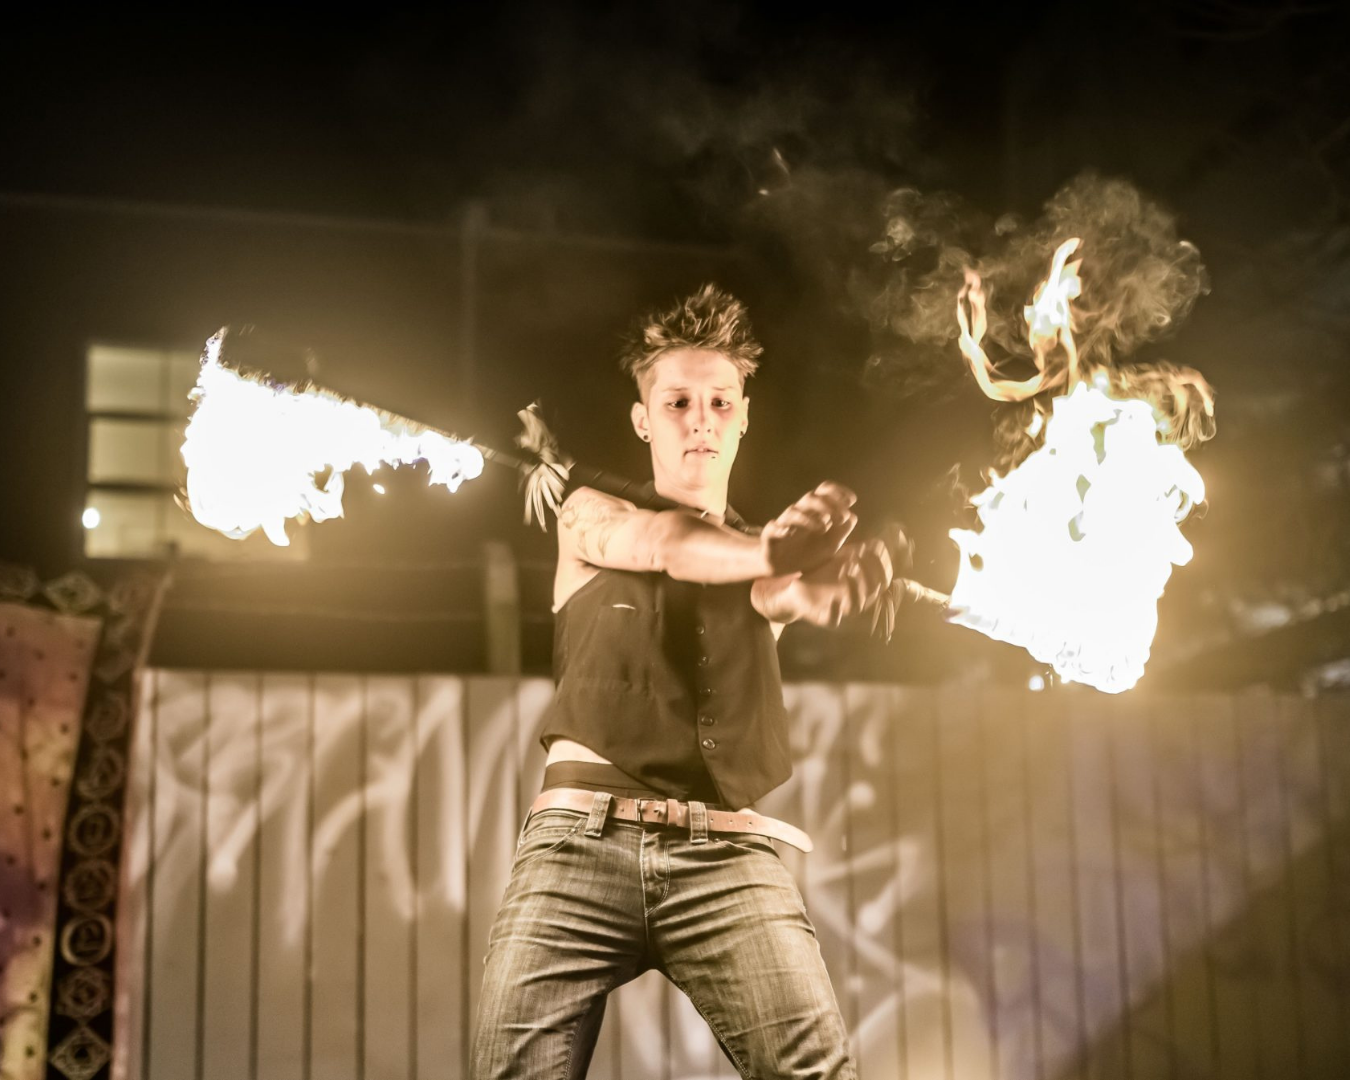 A person performing an act with fire